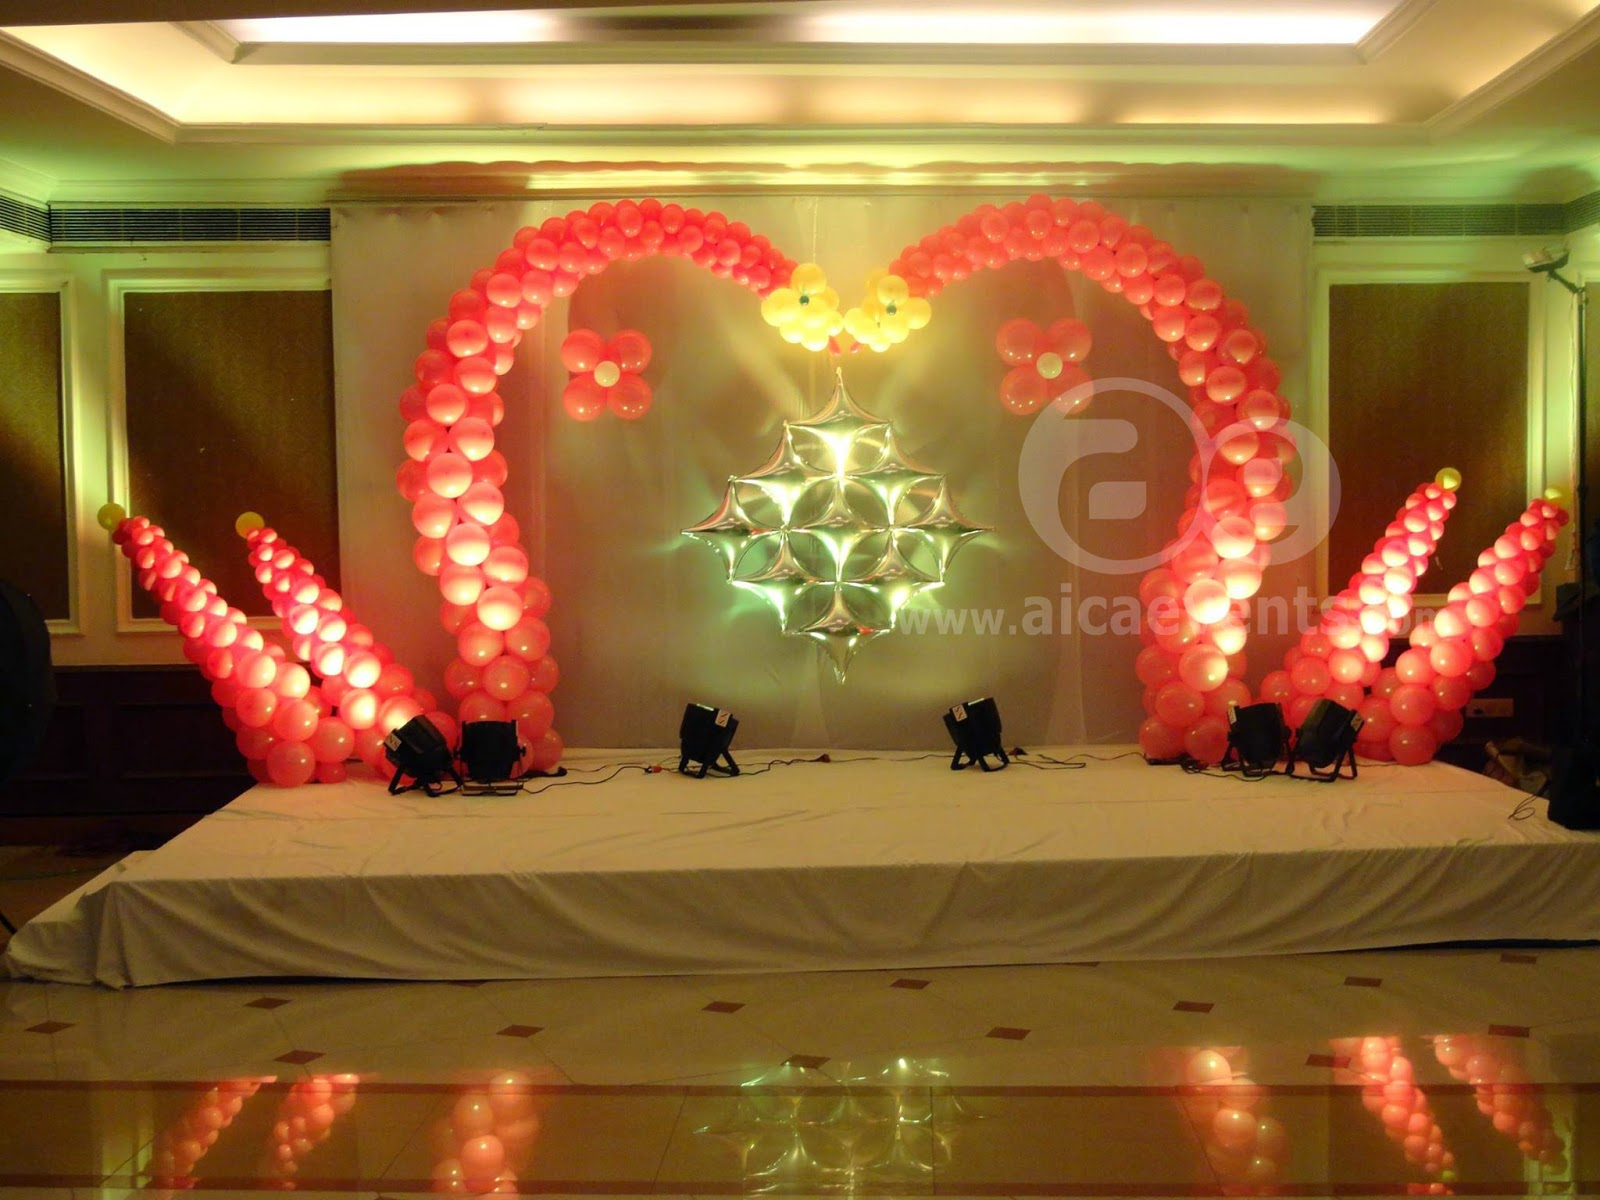 Aicaevents balloon decorations with different stage back for Balloon decoration ideas for birthdays